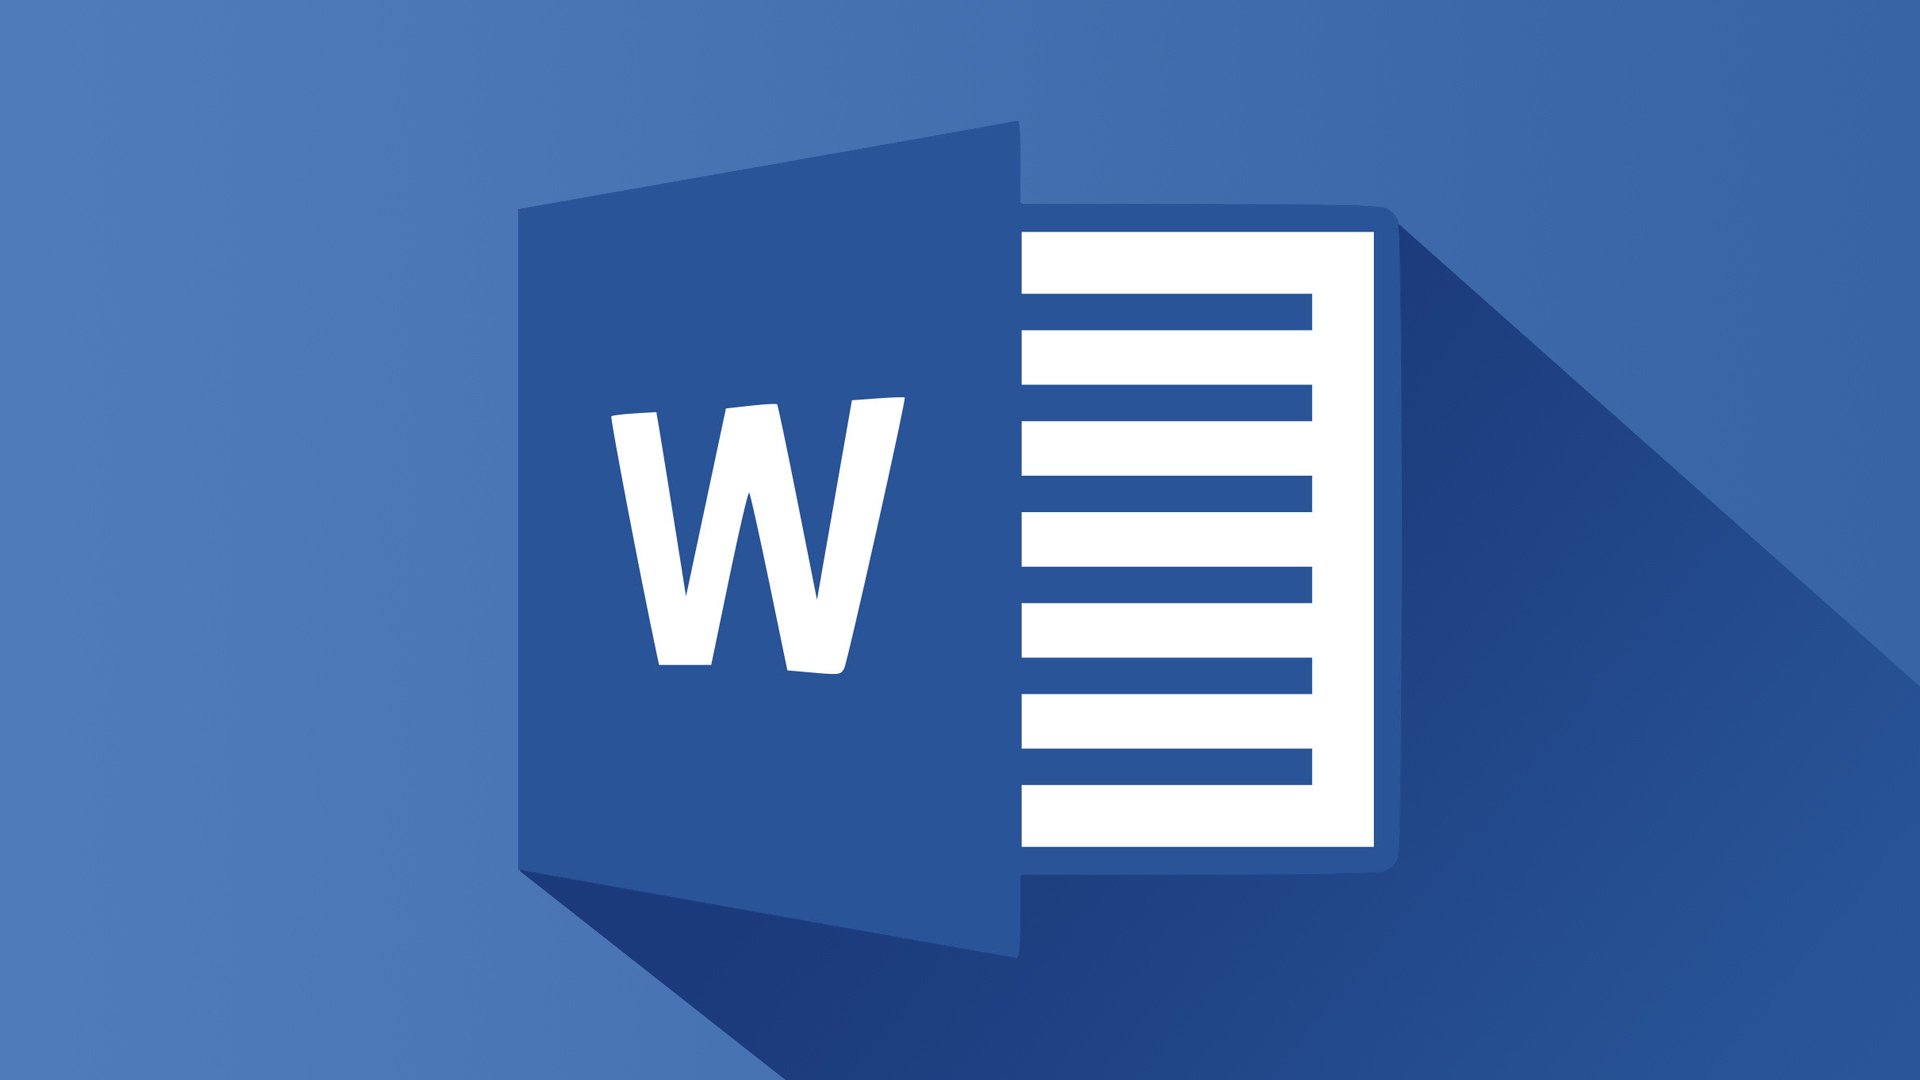 Microsoft Word - AP-Consulting